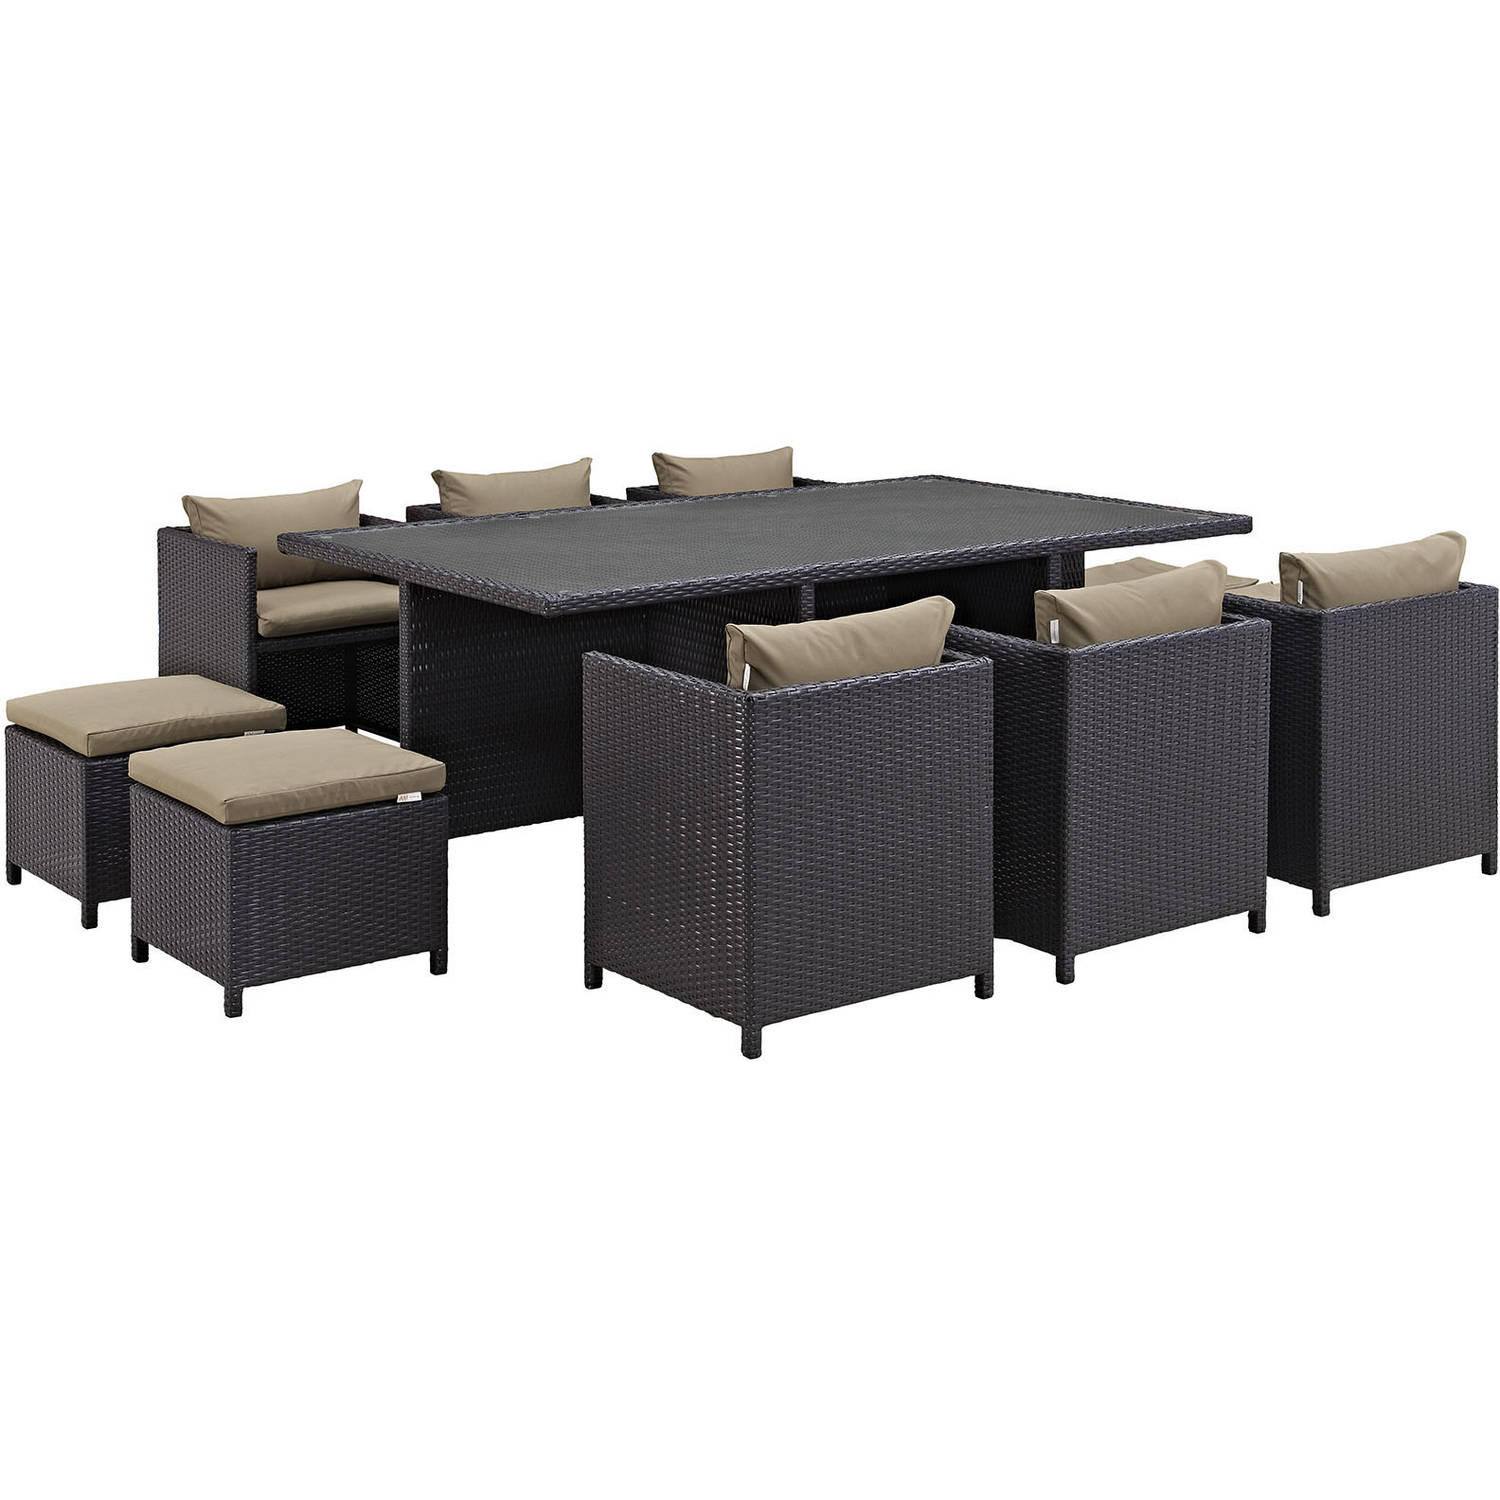 Outdoor Dining Furniture patio dining sets - walmart